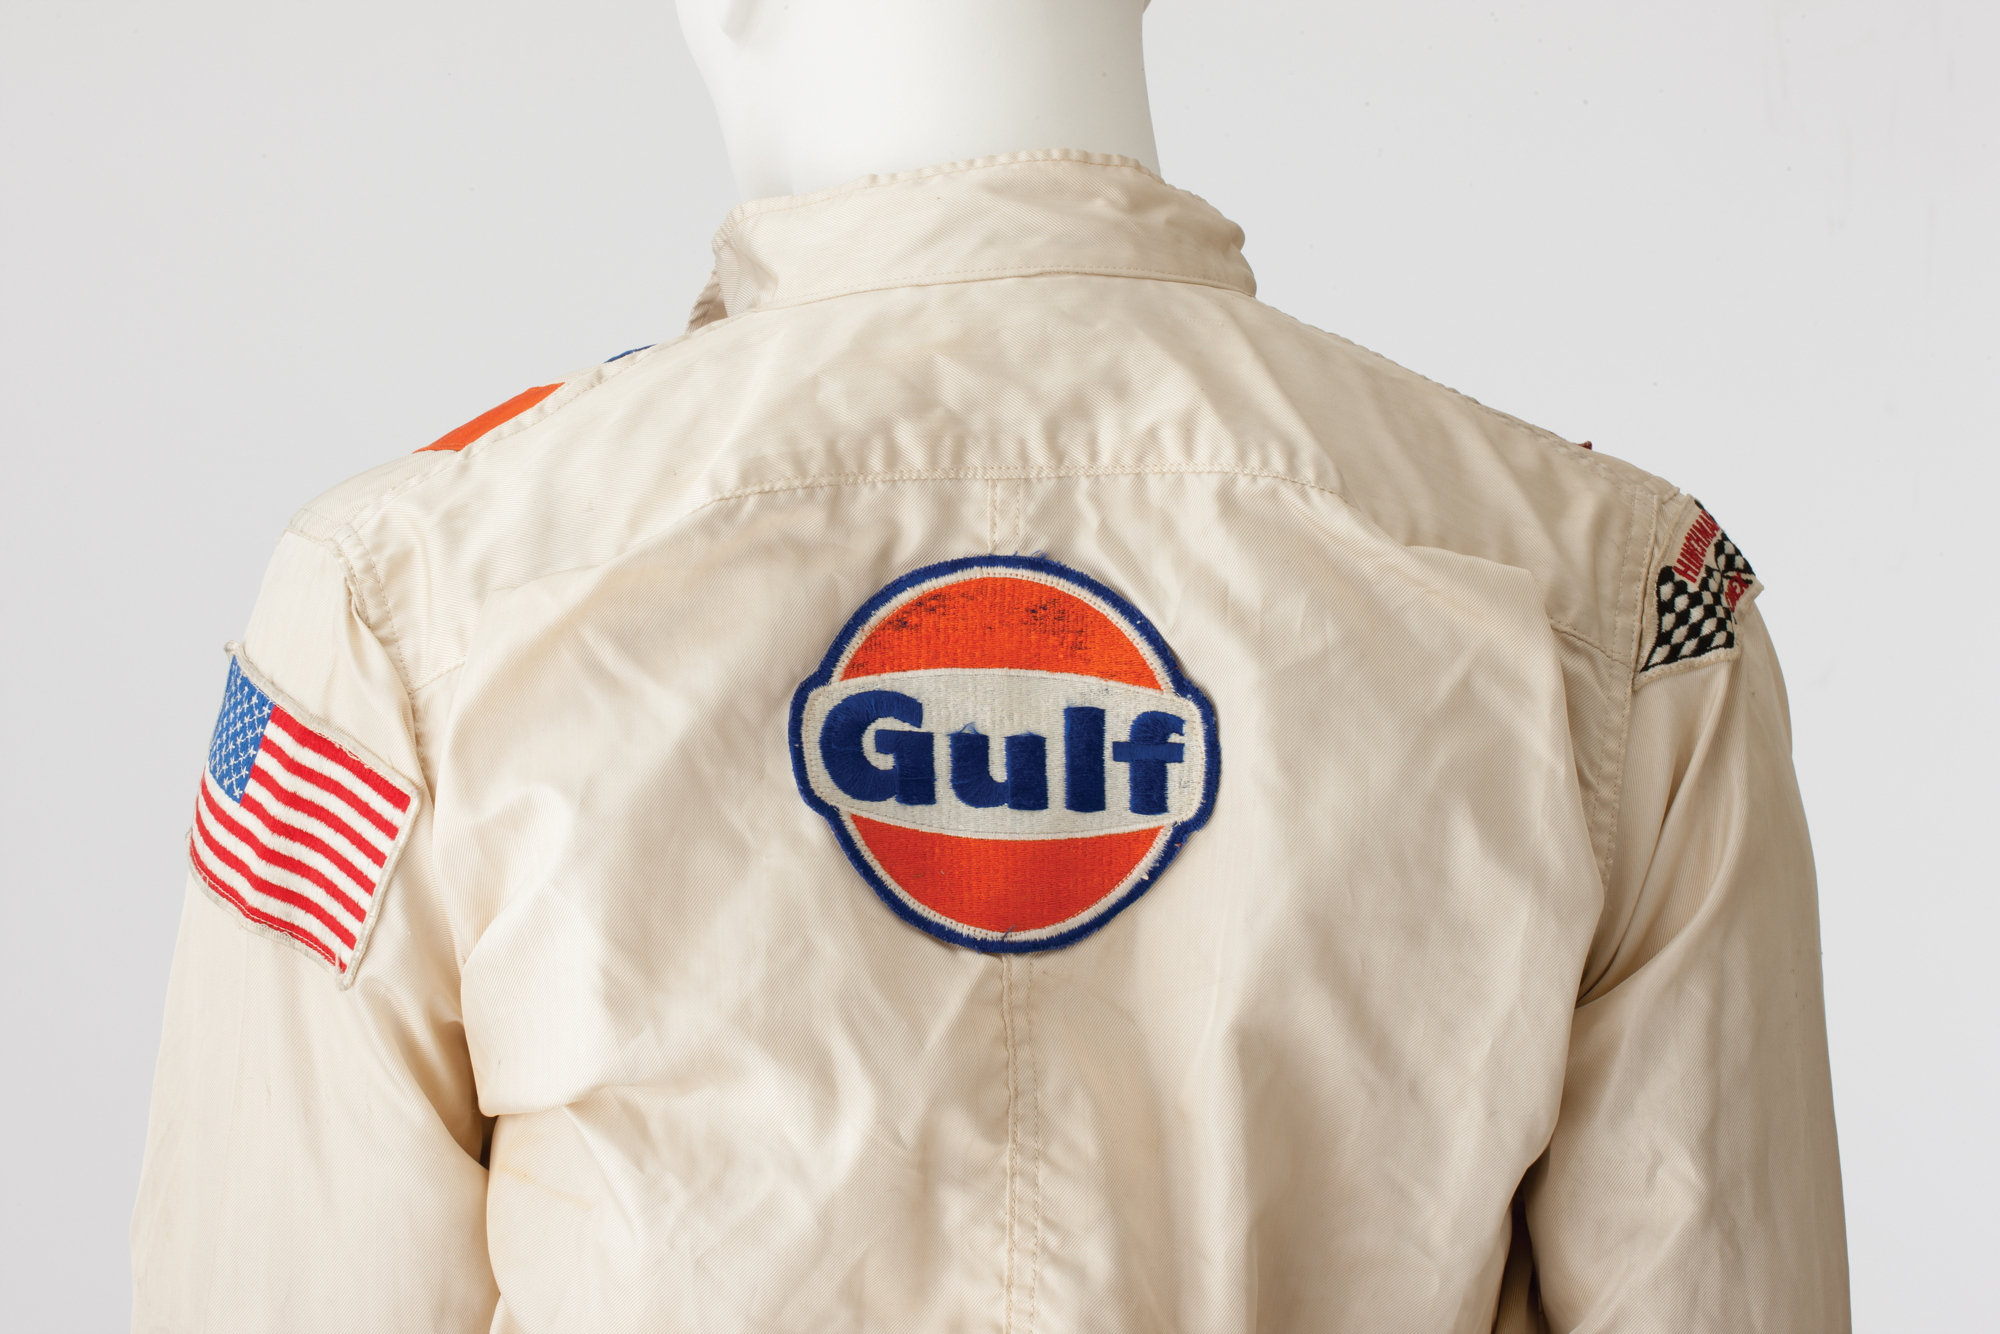 Steve McQueen Le Mans Gulf overalls